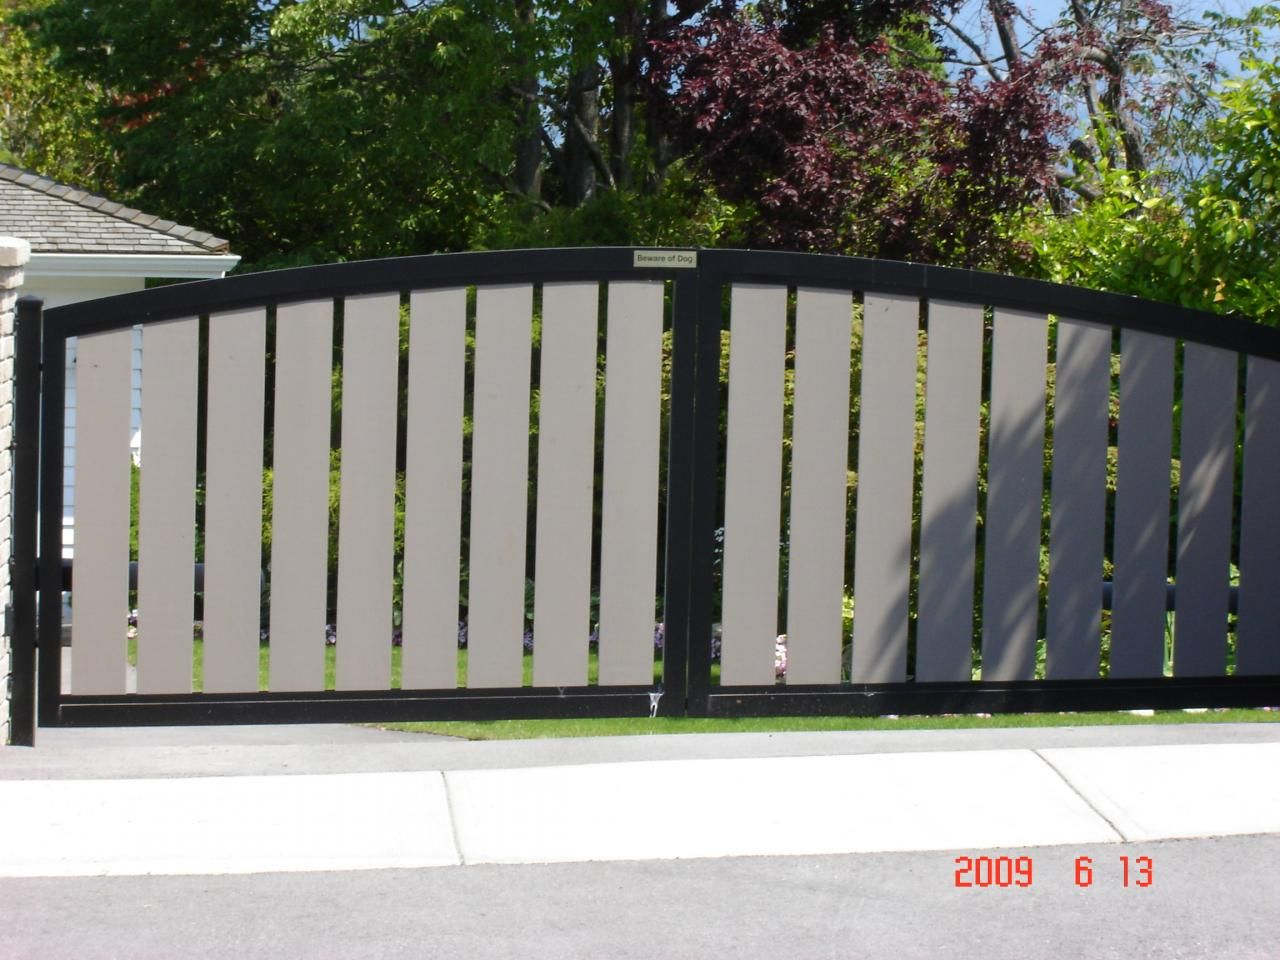 Comfortable Gate Designs 9 Gate Designs Related Keywords   Suggestions Gate  Designs Long Tail. Modern homes iron main entrance gate designs ideas   Ideas for the